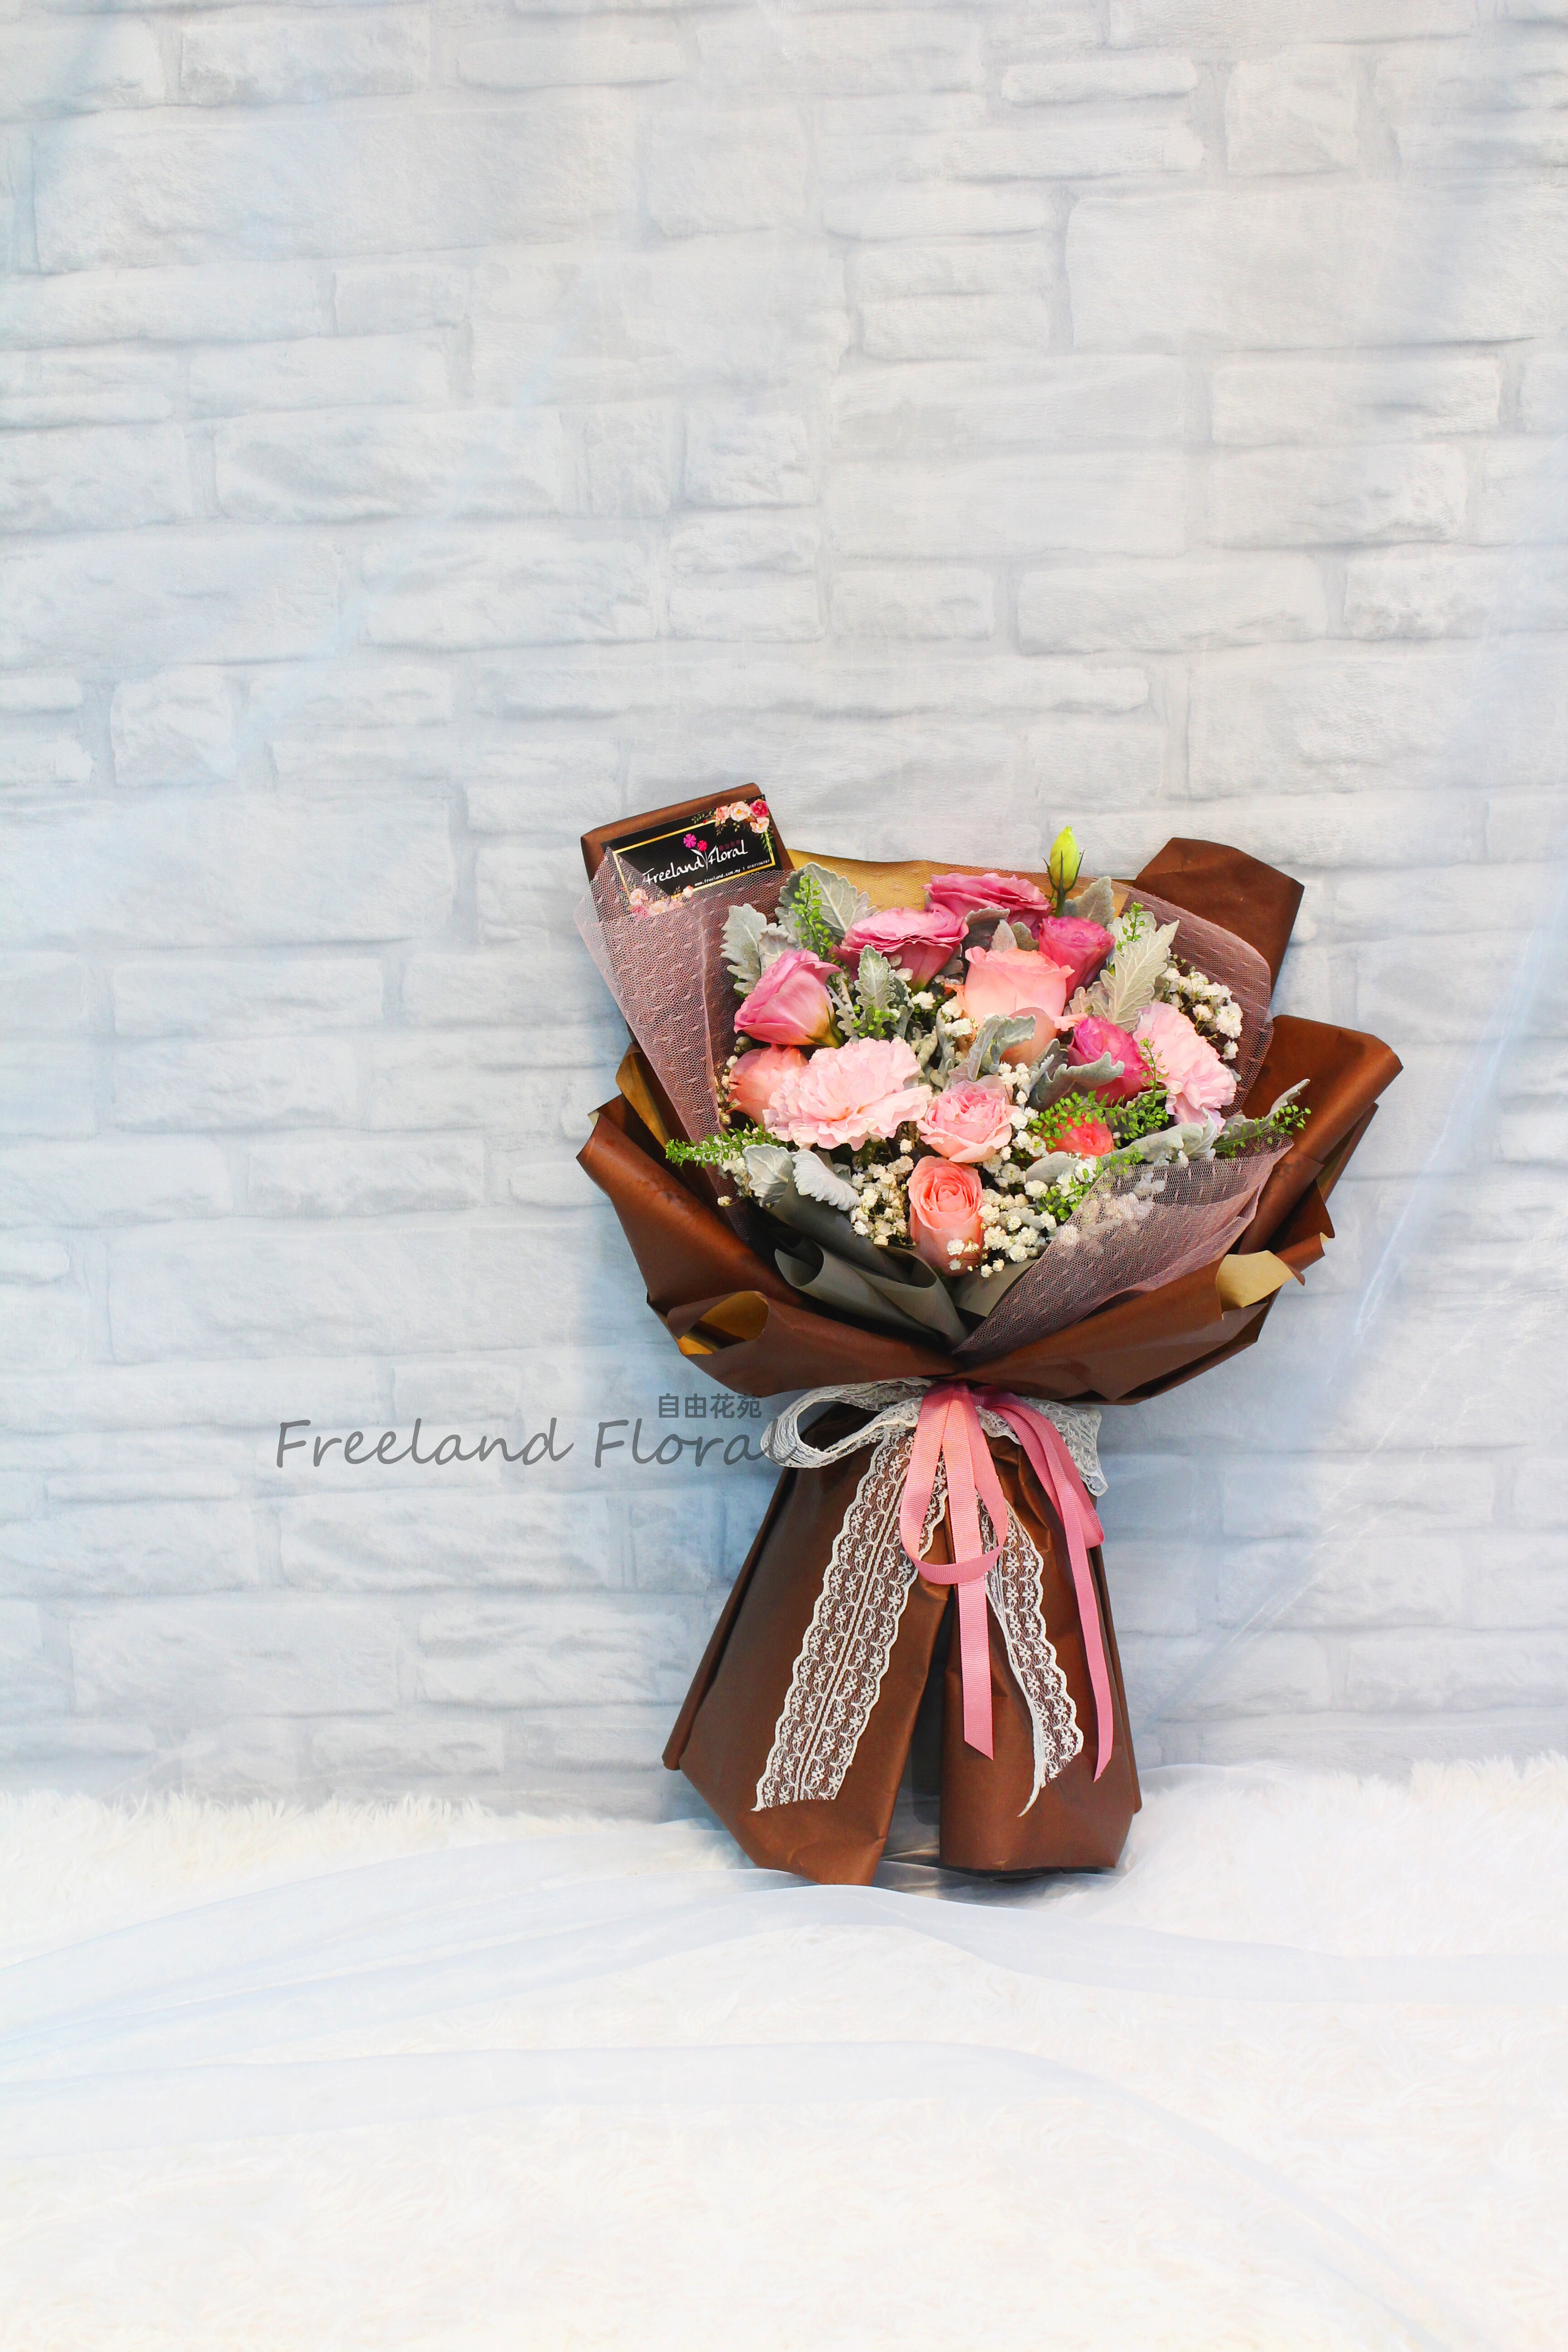 Some Enchanted Evening - Freeland Floral 自由花苑